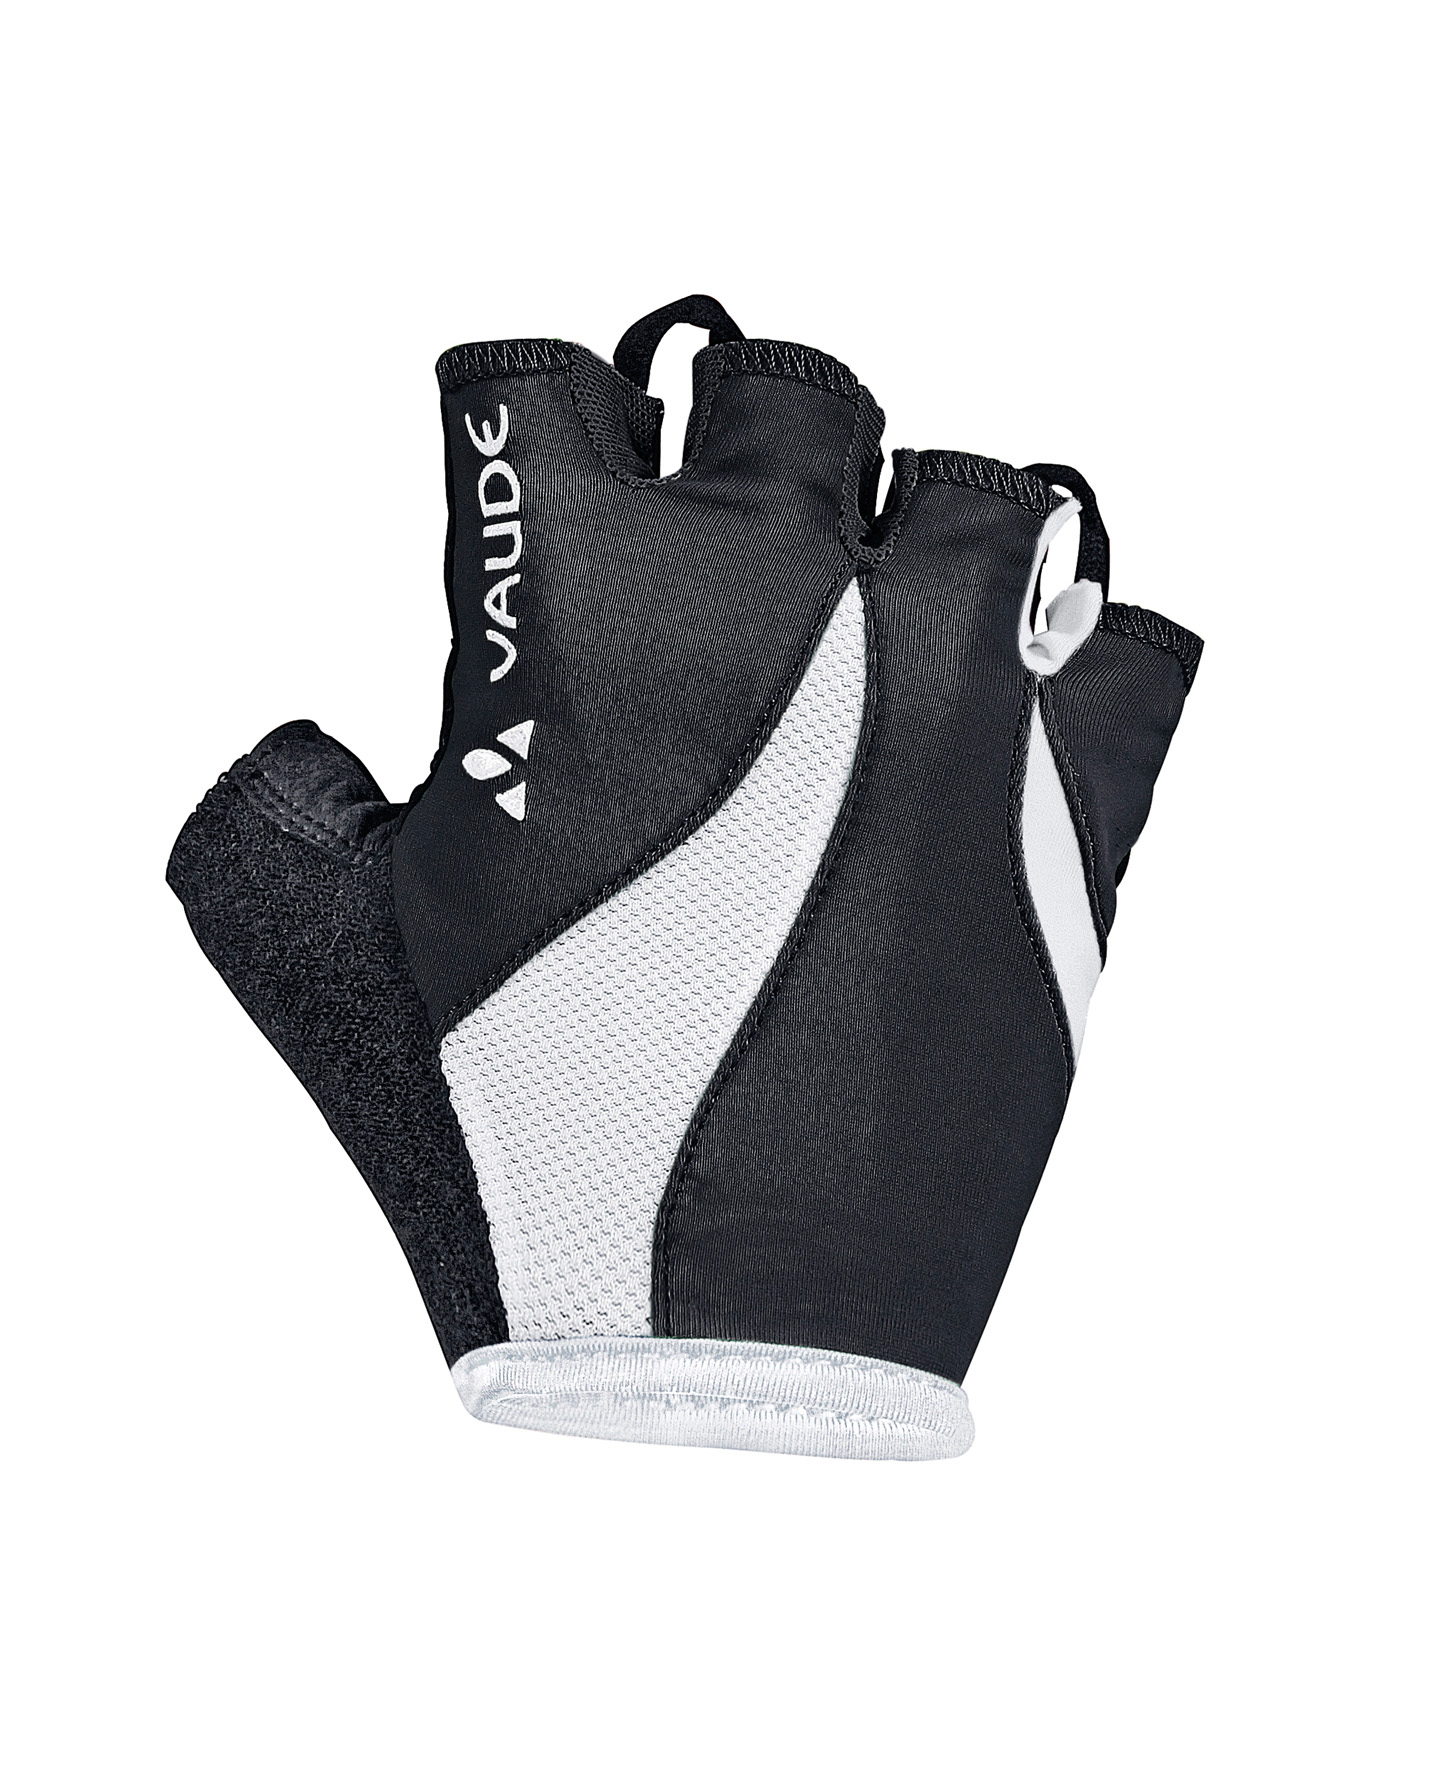 VAUDE Women´s Advanced Gloves black Größe 5 - schneider-sports